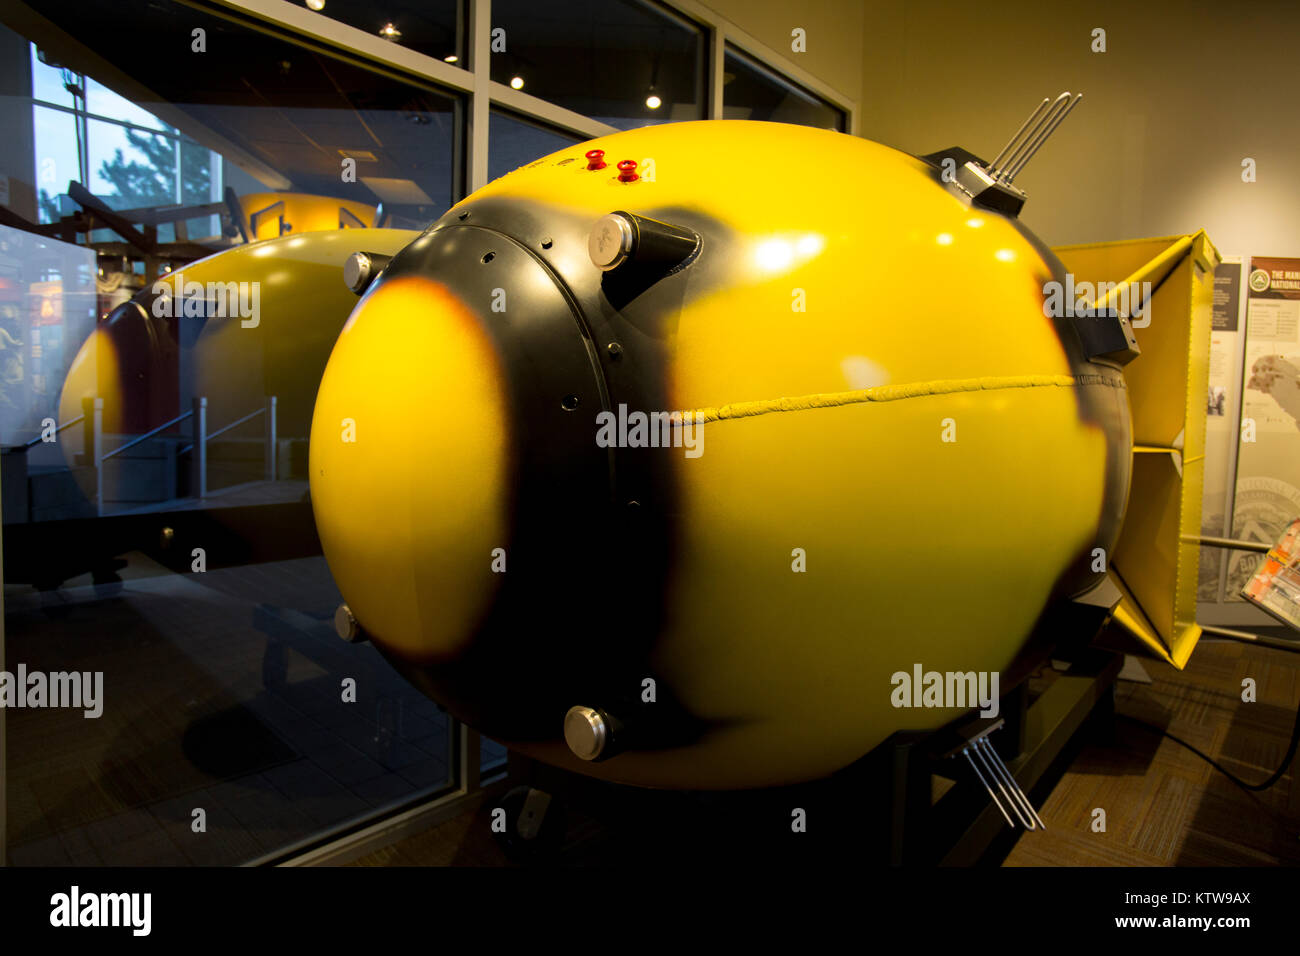 Fat Man and Little Boy atomic bombs - Stock Image